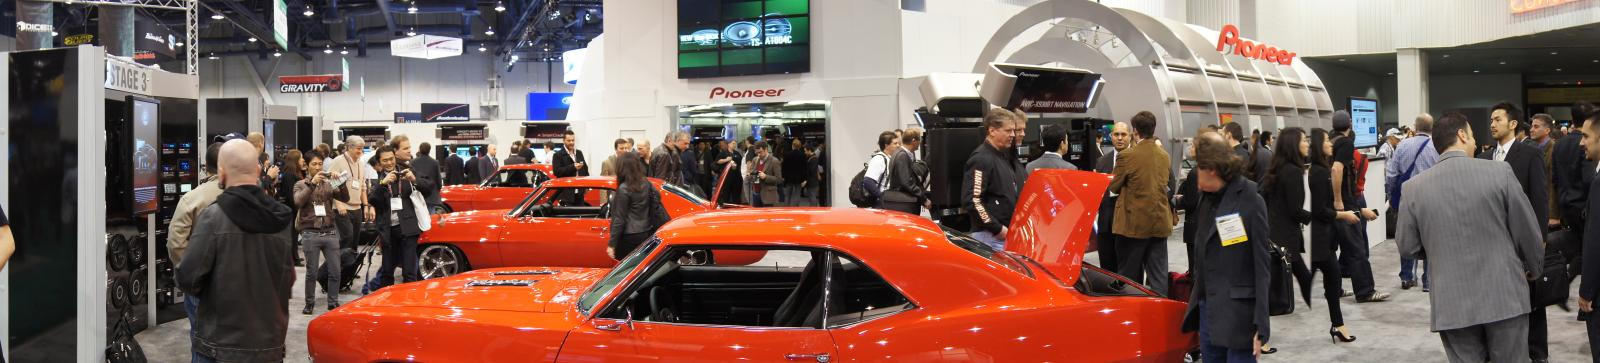 Pioneer's Booth